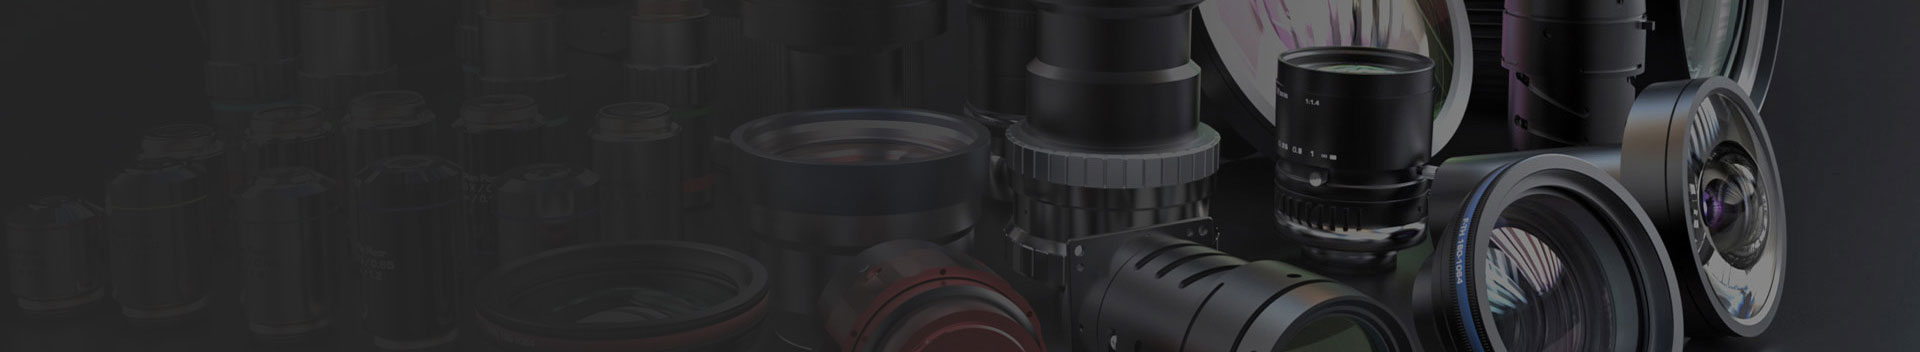 About Hyperion Optics